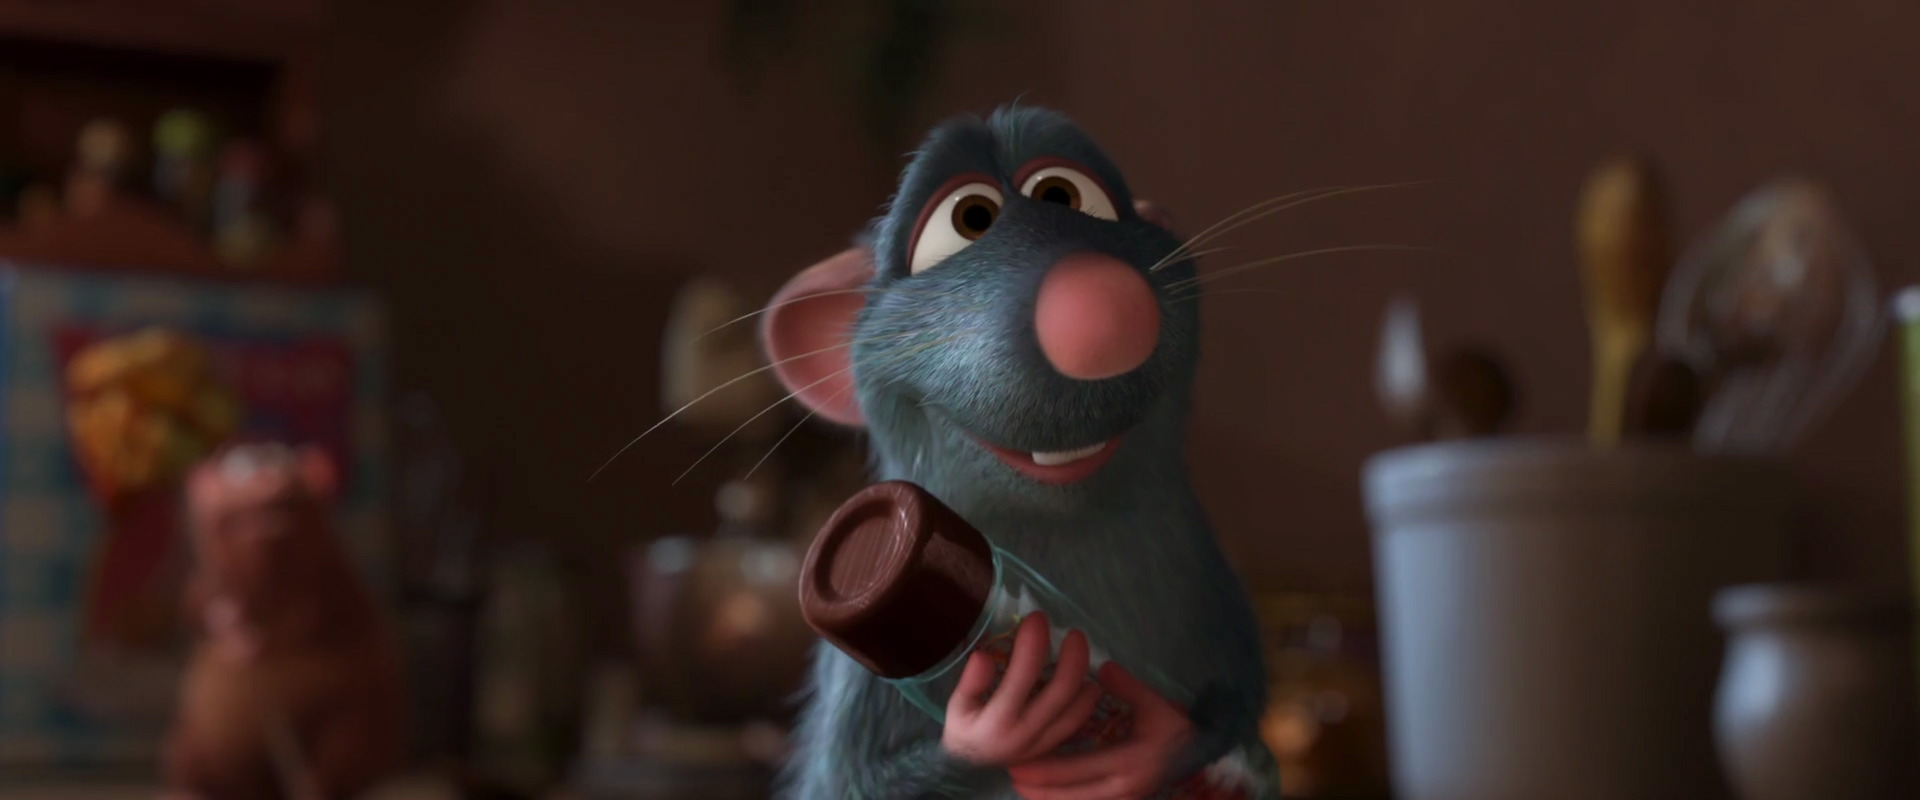 remy-personnage-ratatouille-02